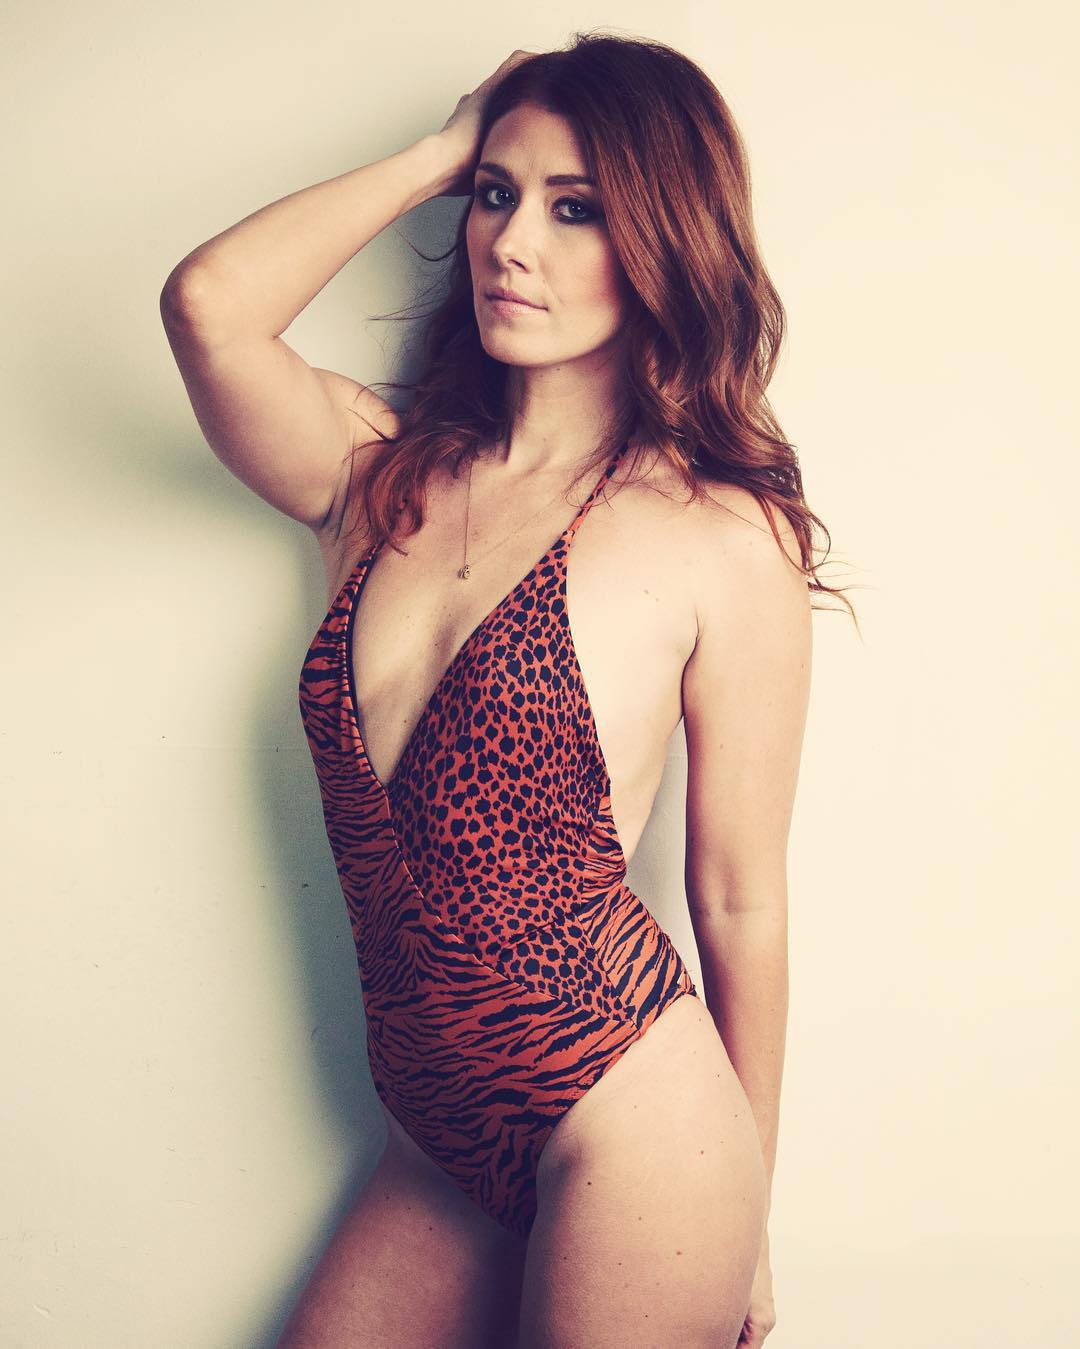 Bikini Hot Jewel Staite naked photo 2017